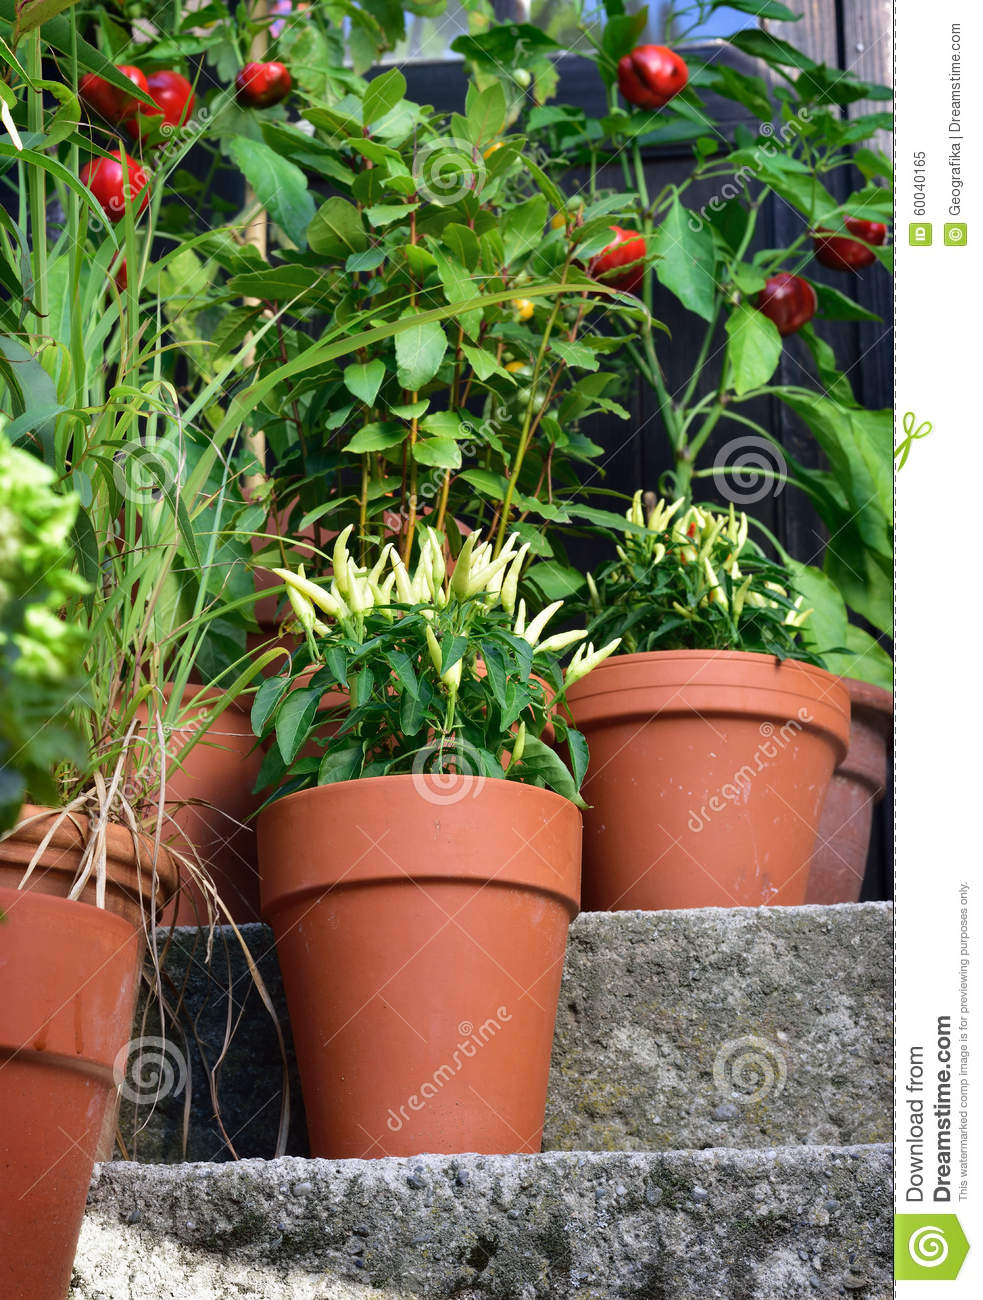 Container garden vegetables plants in pot stock photo for Ornamental garden plants